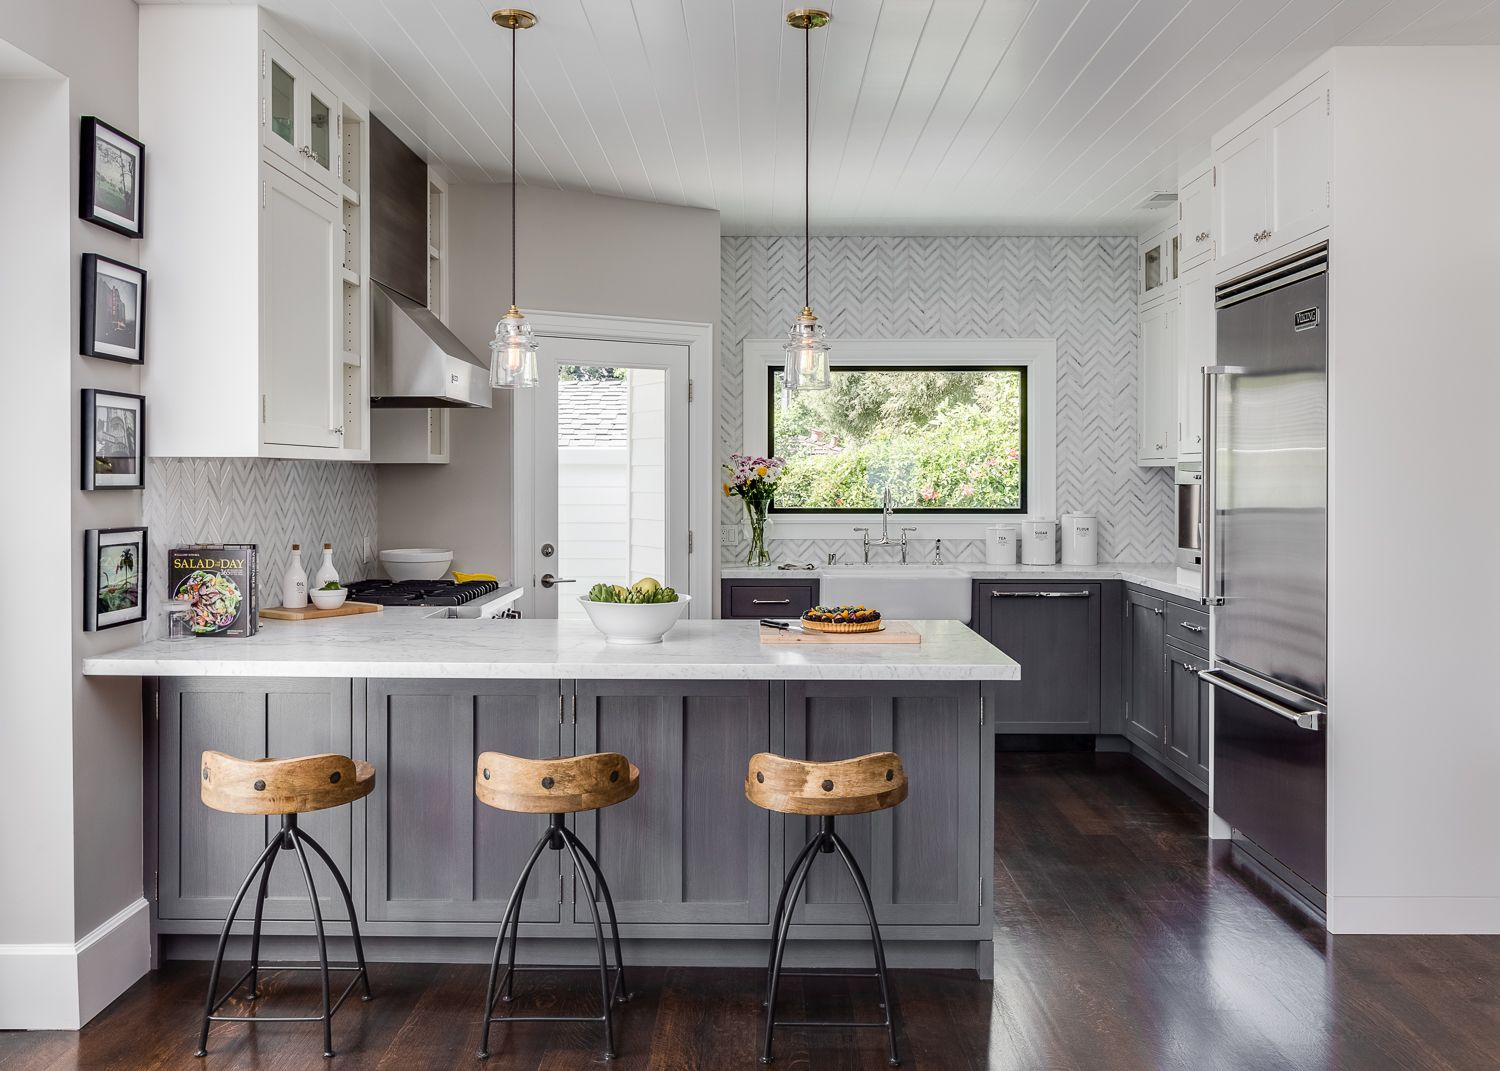 Lchambers New Cushdon House Ideas Pinterest - Warm gray kitchen cabinets